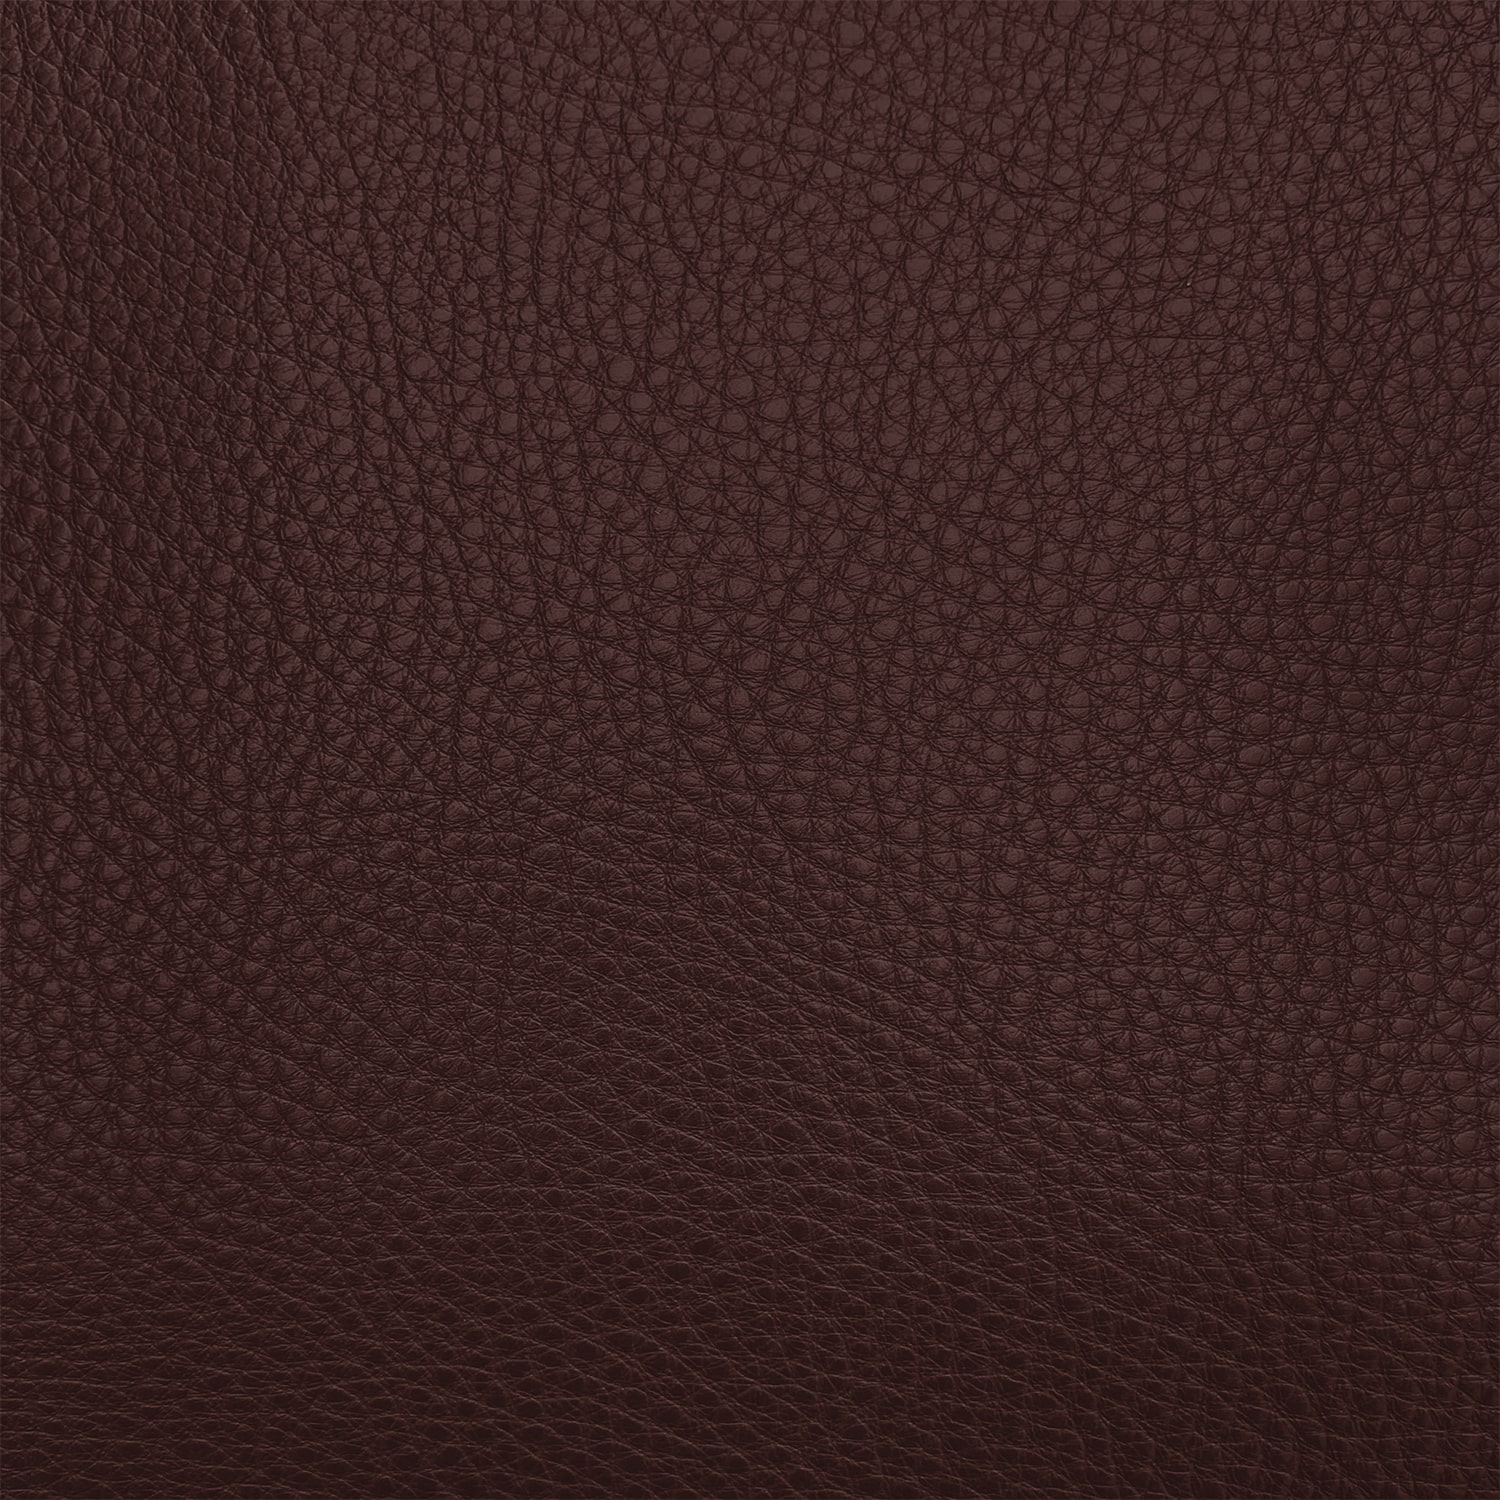 Bison: Brown (grade F): #BIS0005<br>Thick, soft, even coloration; medium protection